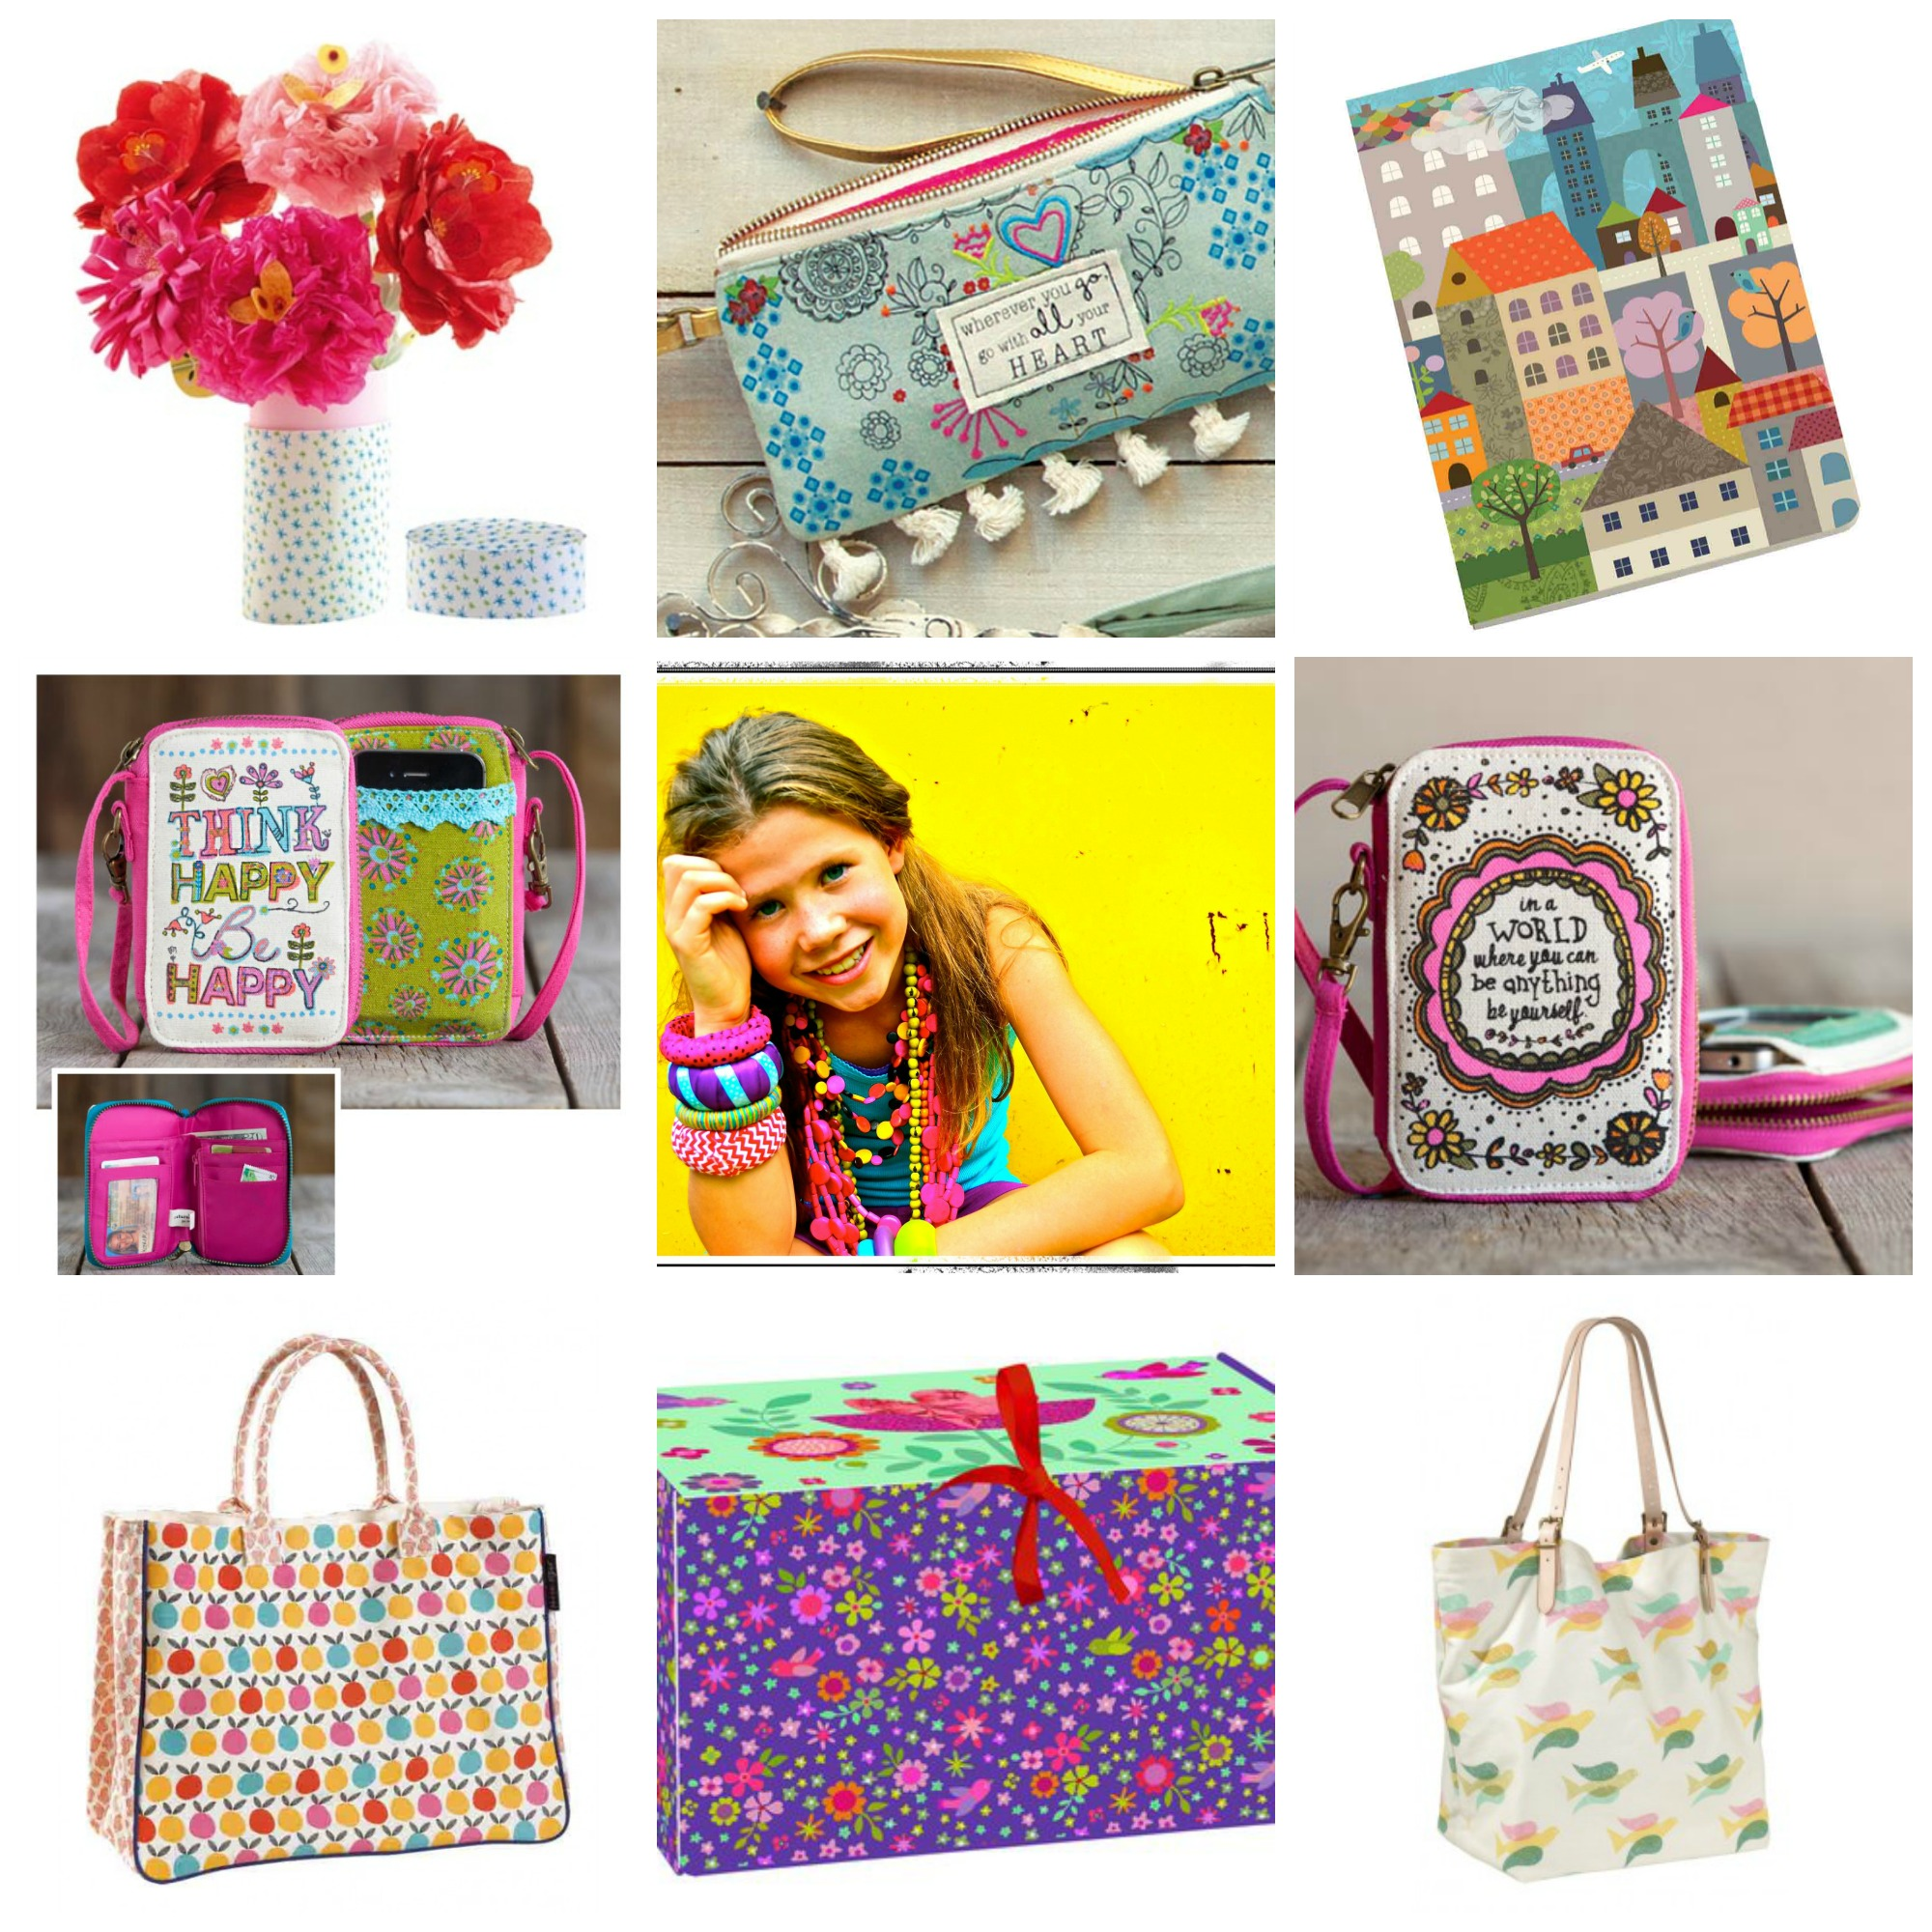 Top 9 Gifts For Tween Girls